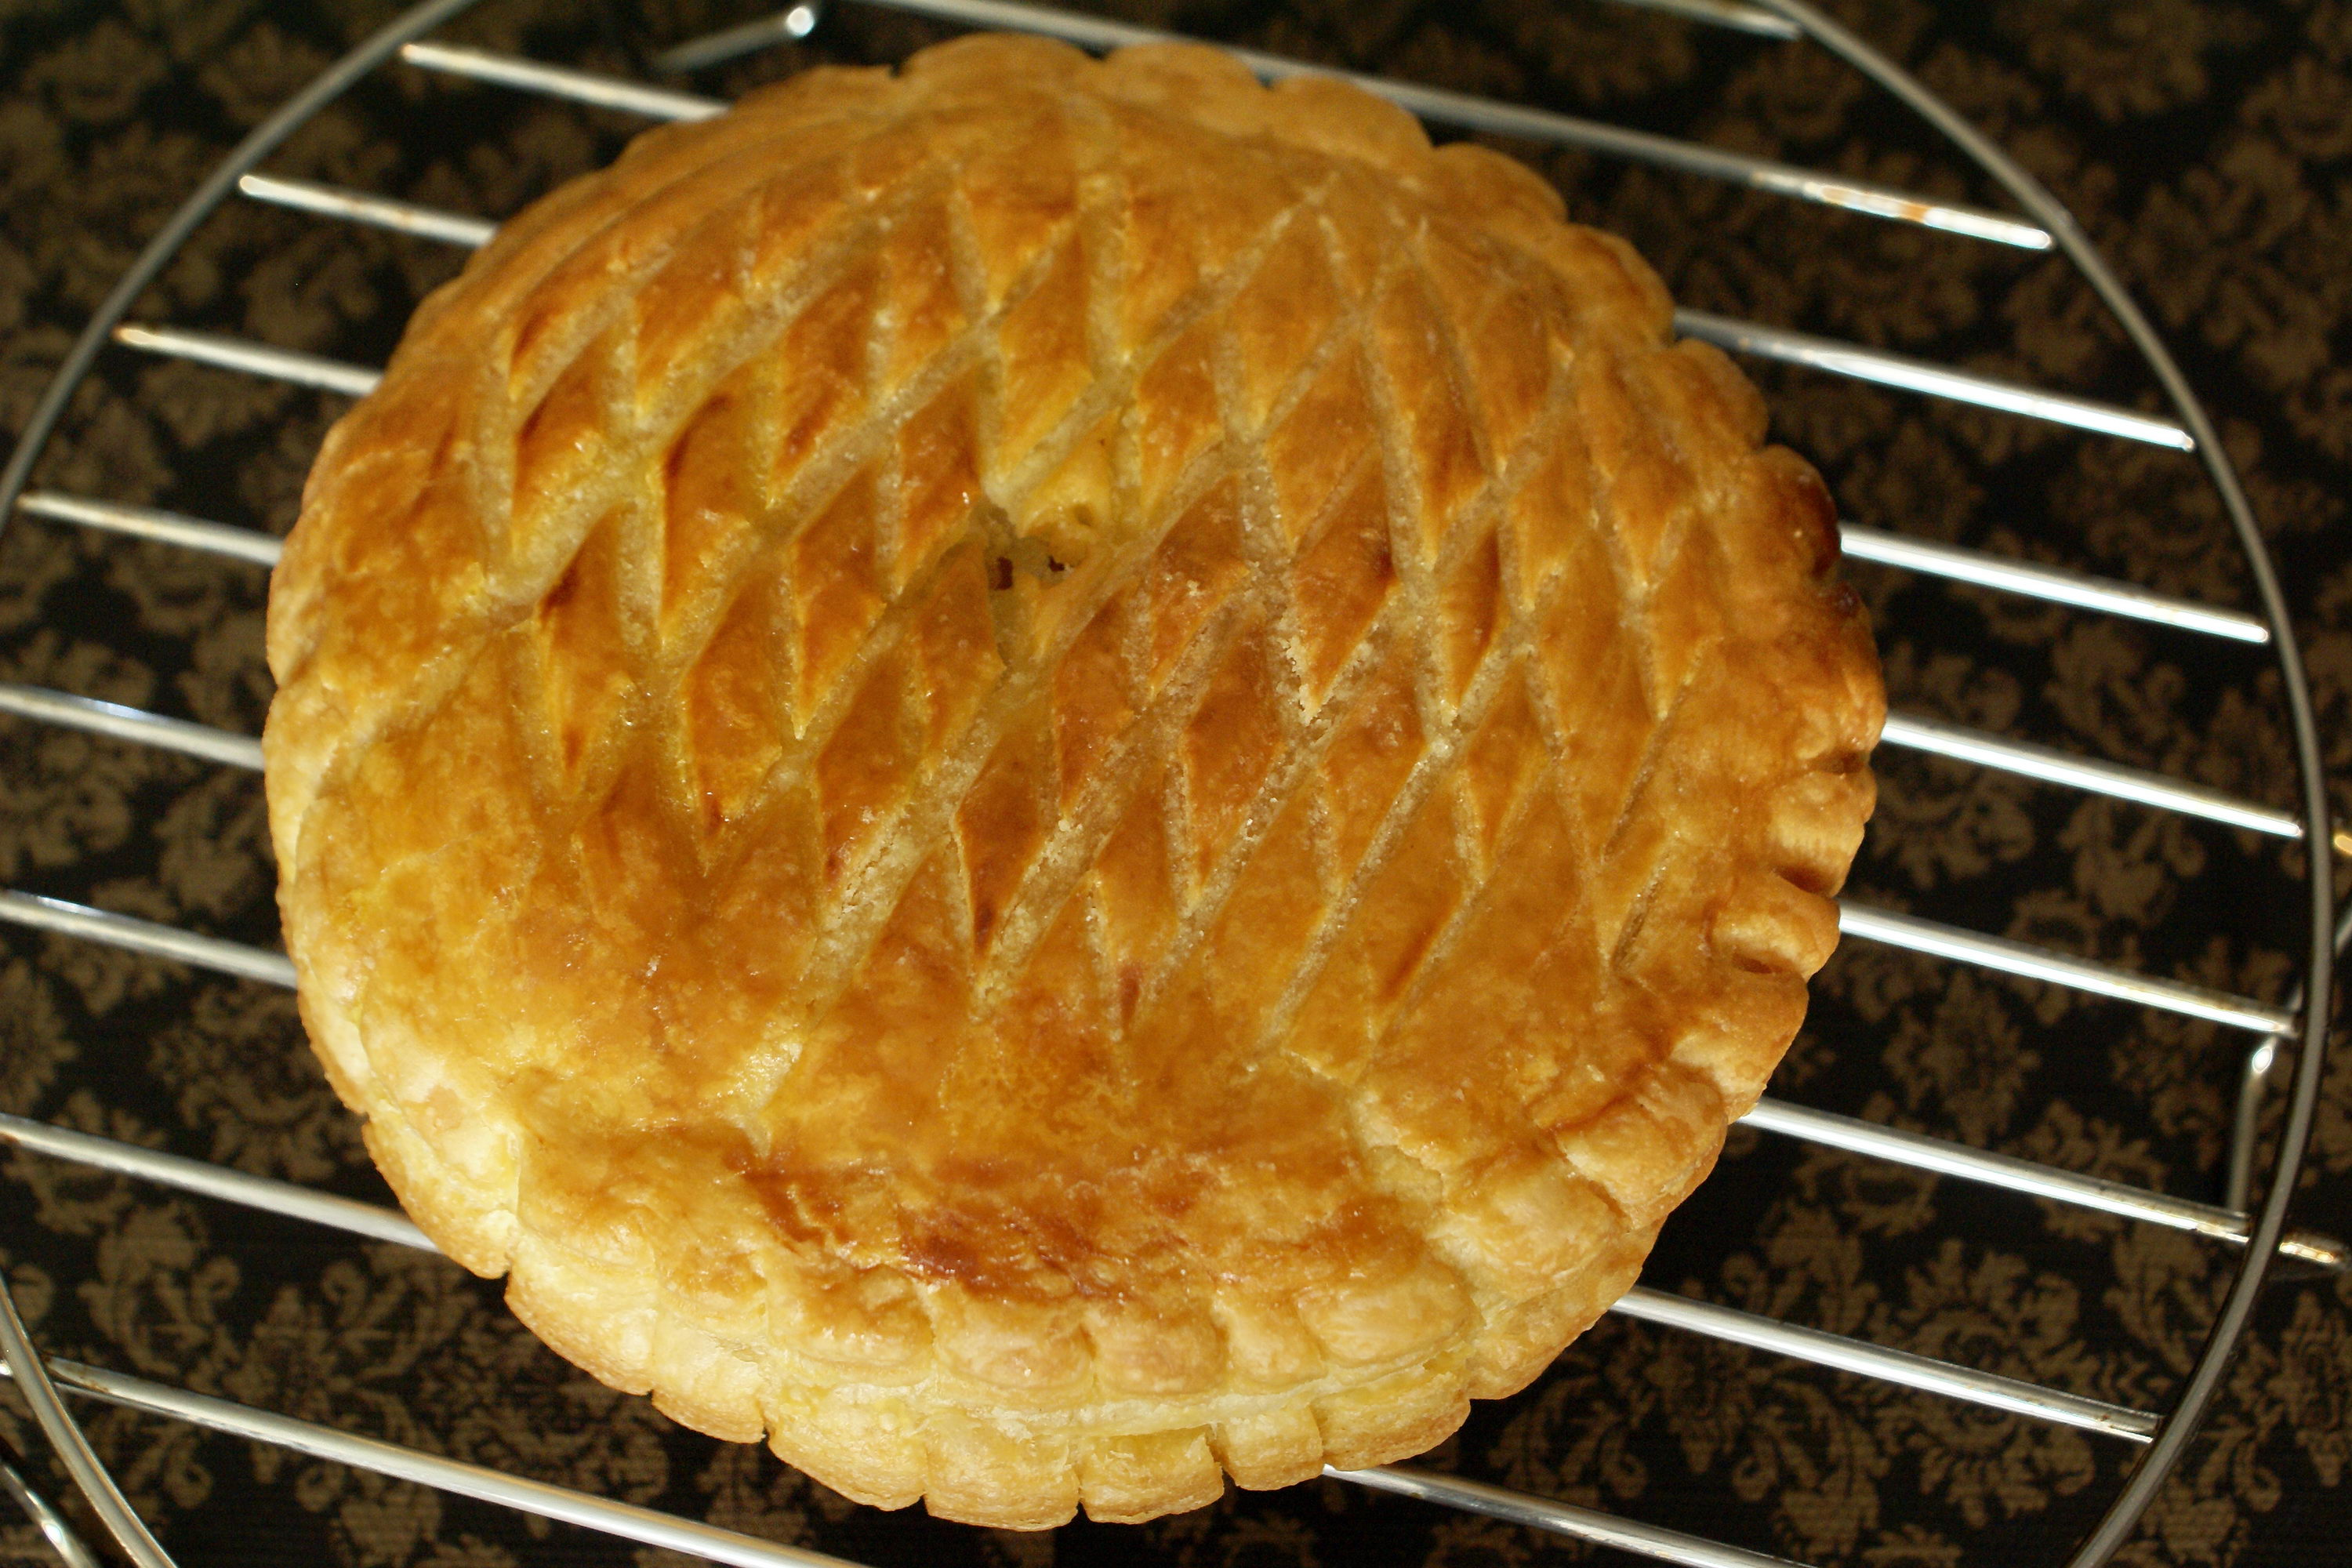 ... cake - La galette des rois ou pithivier in english par Chef Simon